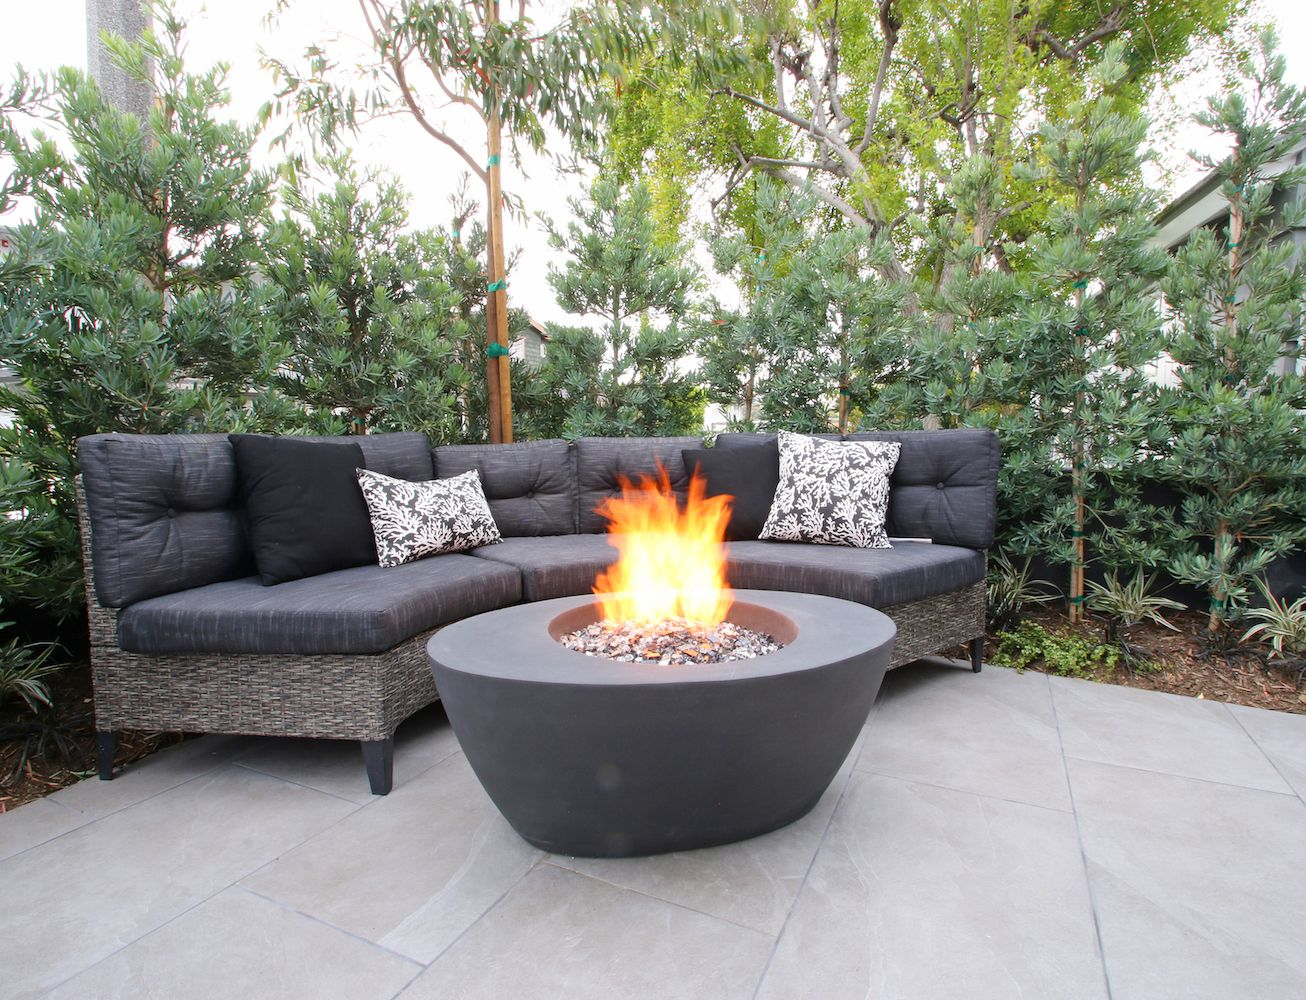 outdoor living room | Fire pit bowl, Fire bowls, Fire pit on Living Room Fire Pit id=75987